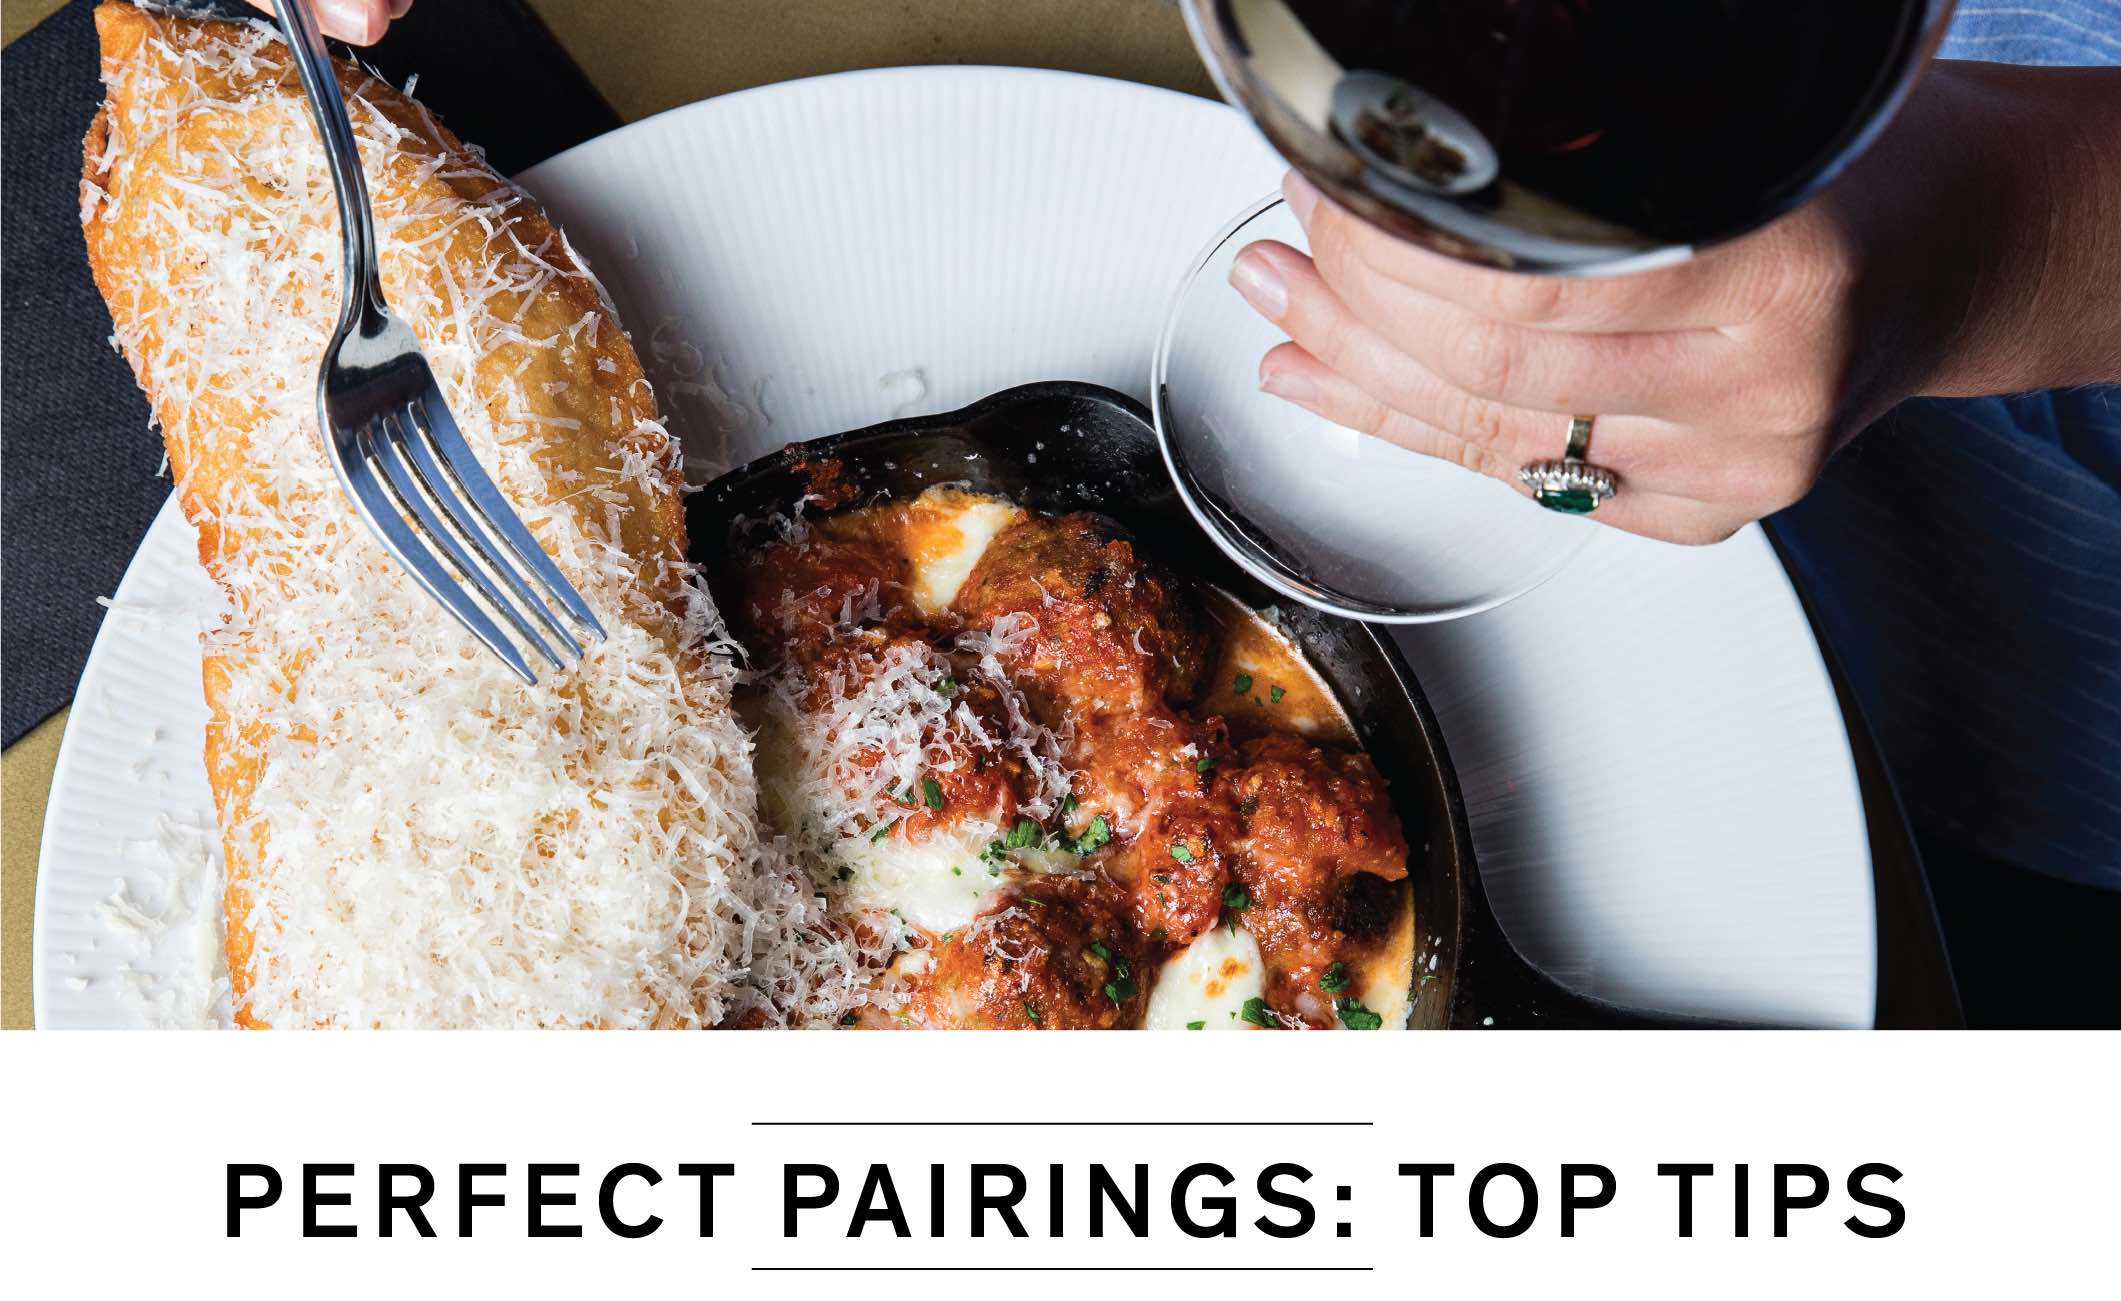 PERFECT PAIRINGS: TOP TIPS